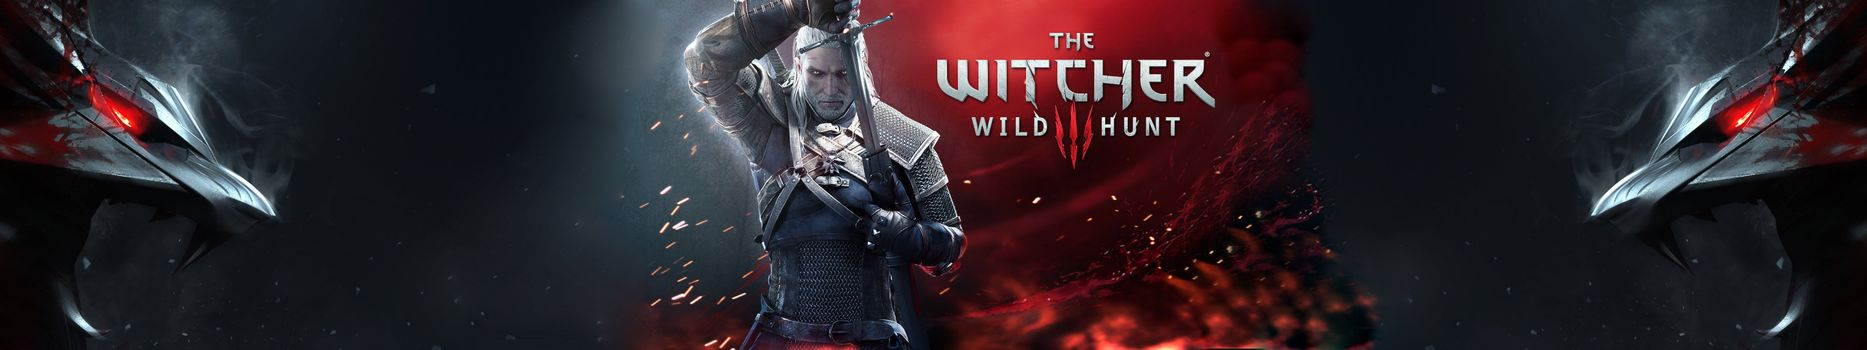 Photo free The Witcher, sword, monitor